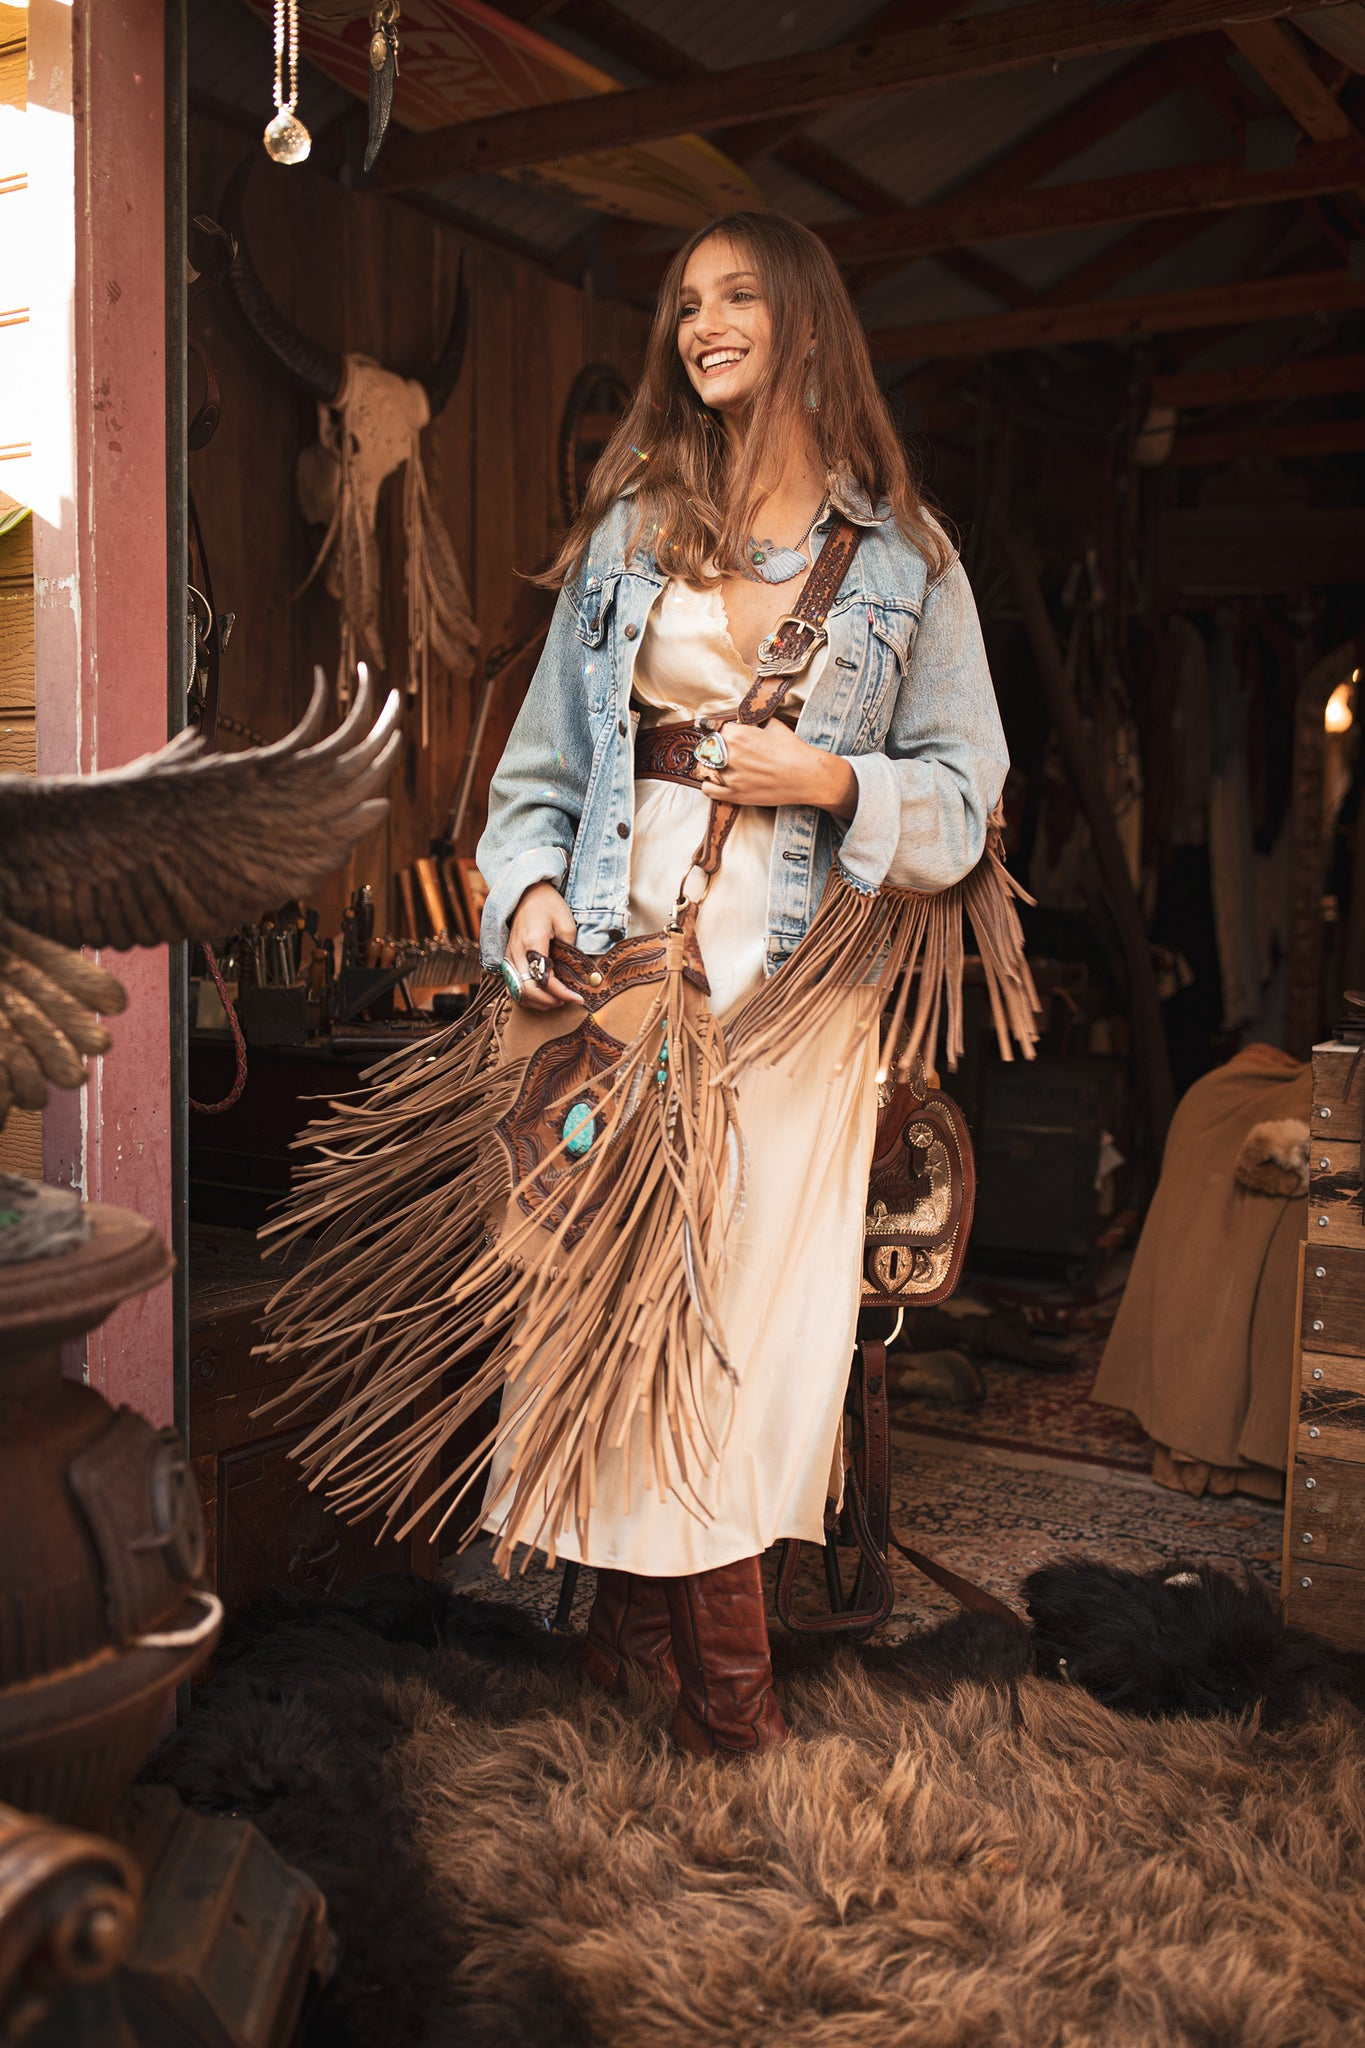 Twirling with Buffalo Girl Apache Tasseled Bag in tan suede featuring a beautiful Sierra Nevada Turquoise stone - $2400